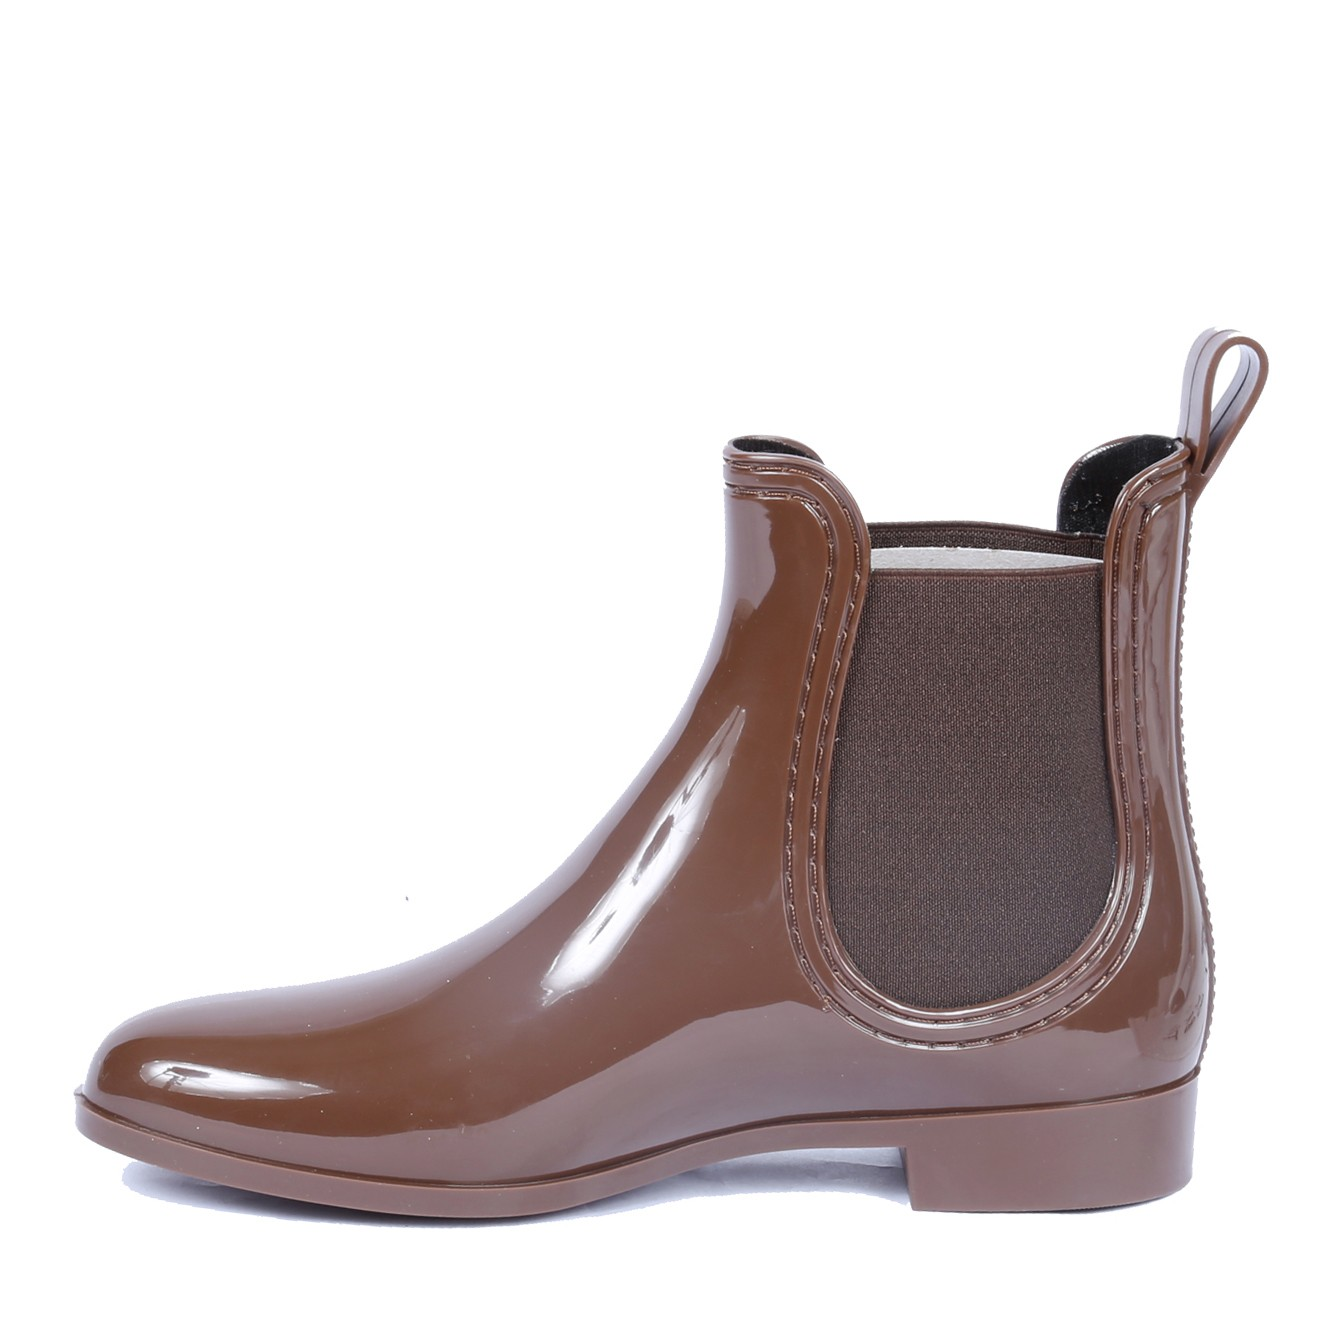 Brown Rain Boots cHD8x3hQ